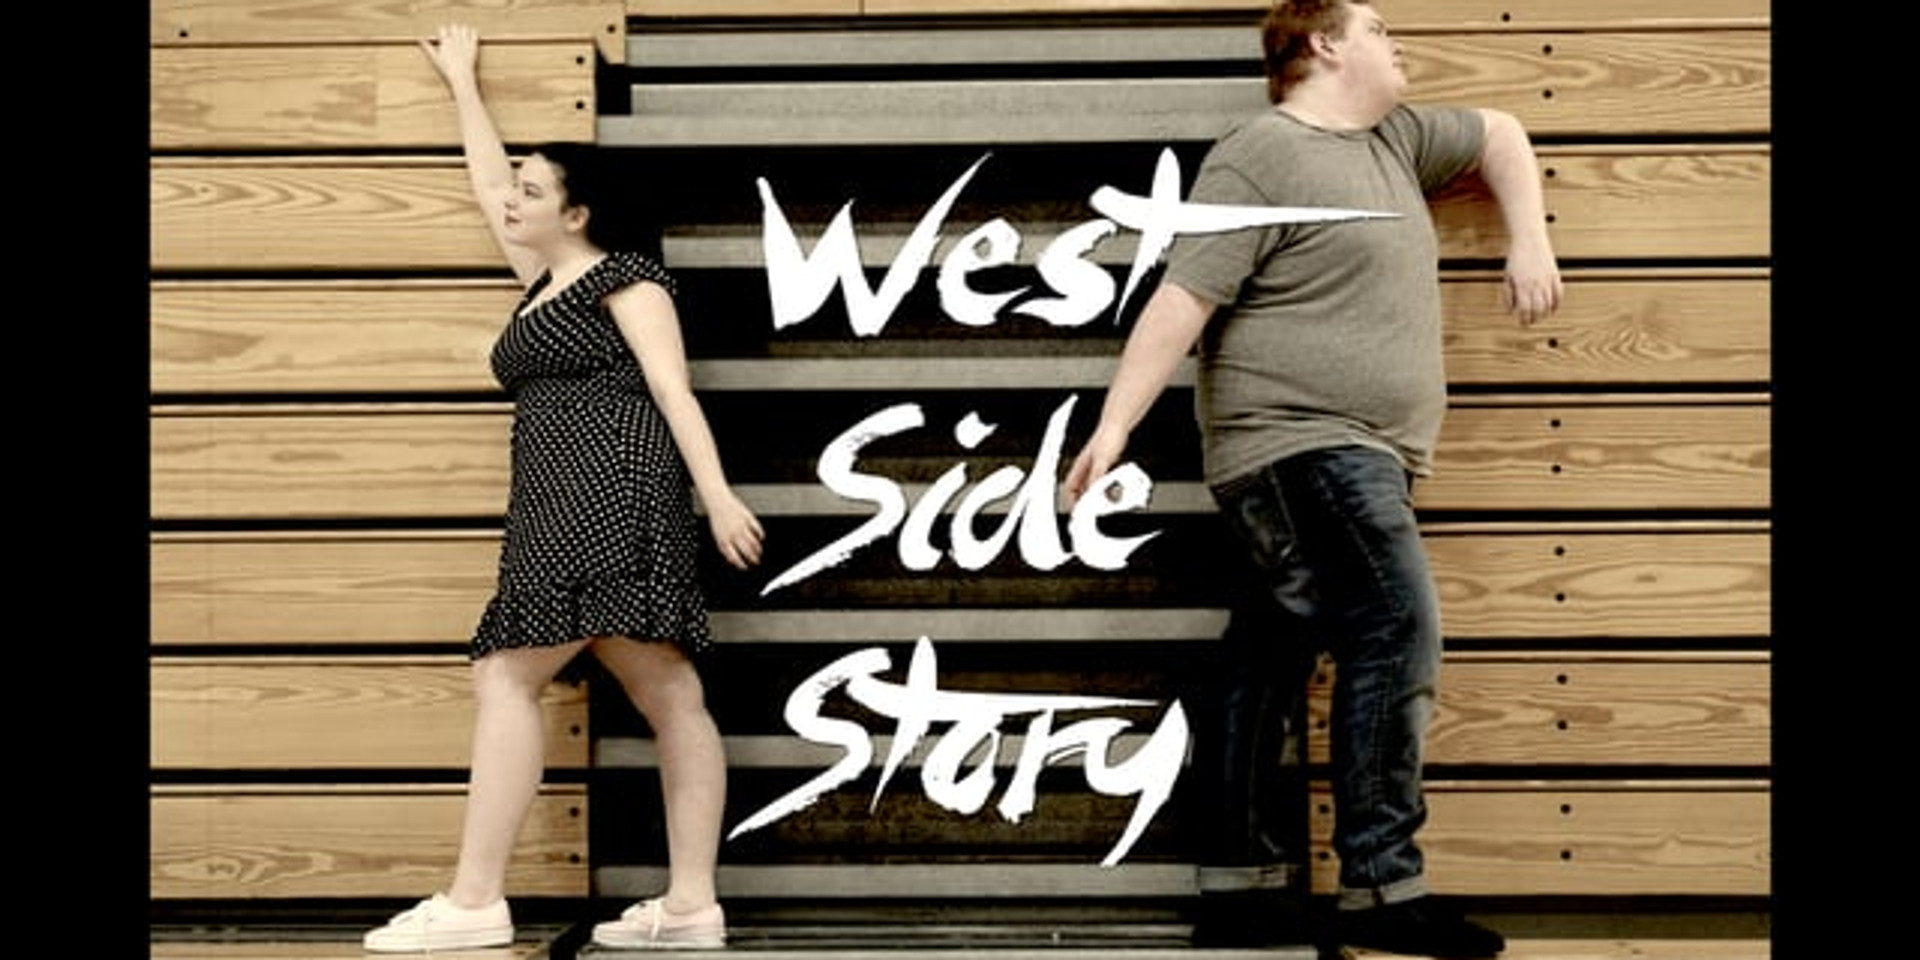 West Side Story Opening Scene: A Reimagination